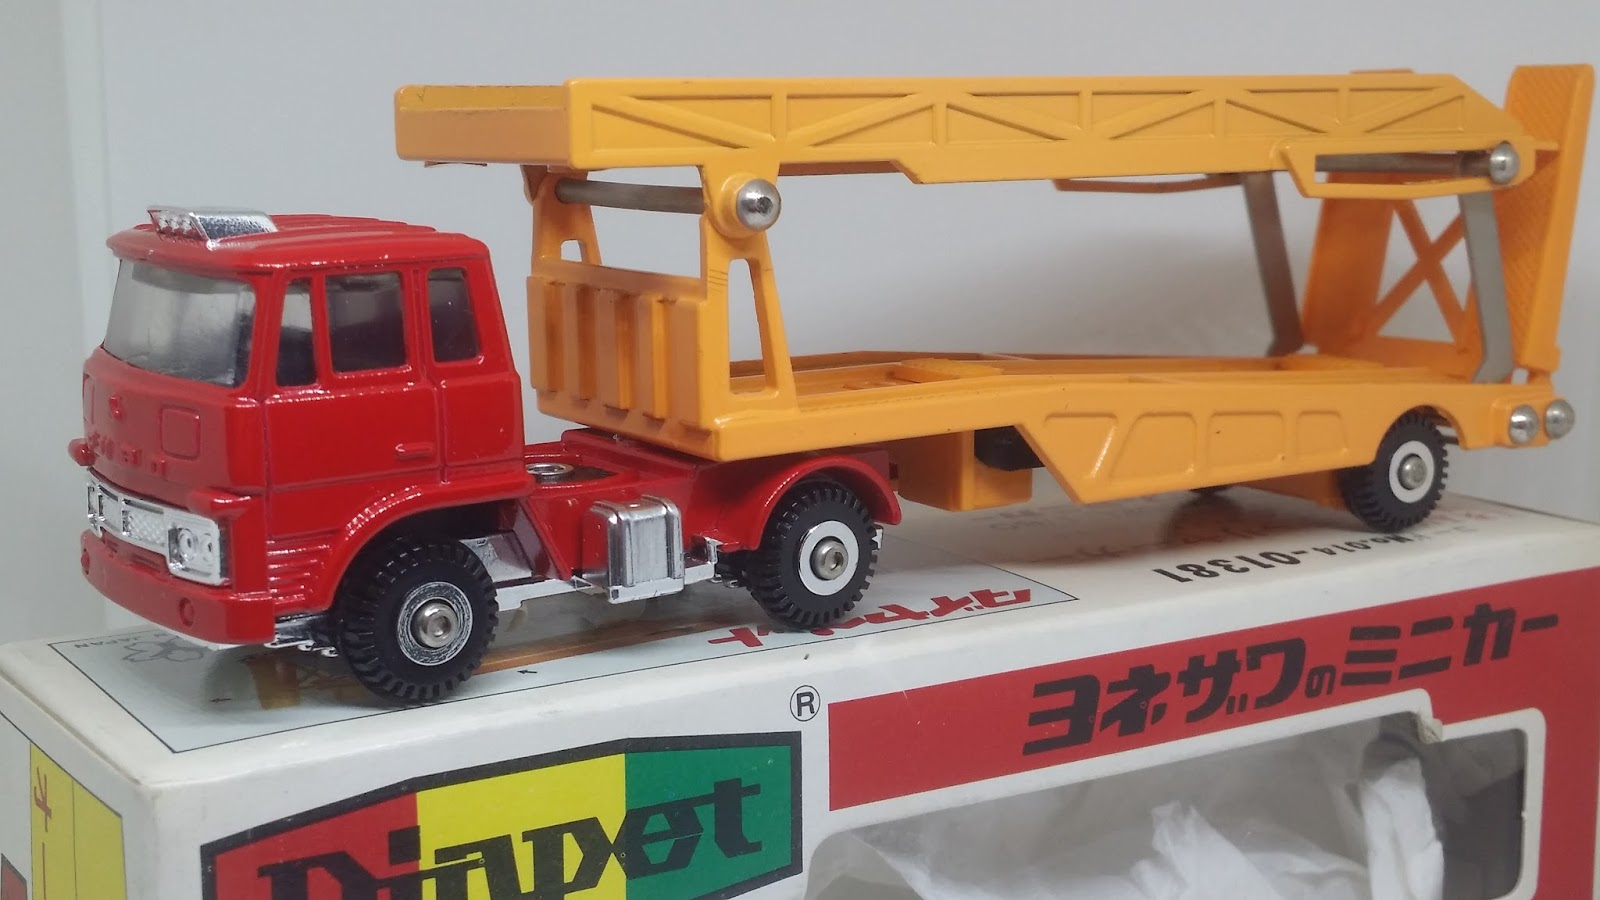 Go! Go! Tomica: My Toy Cars Part III